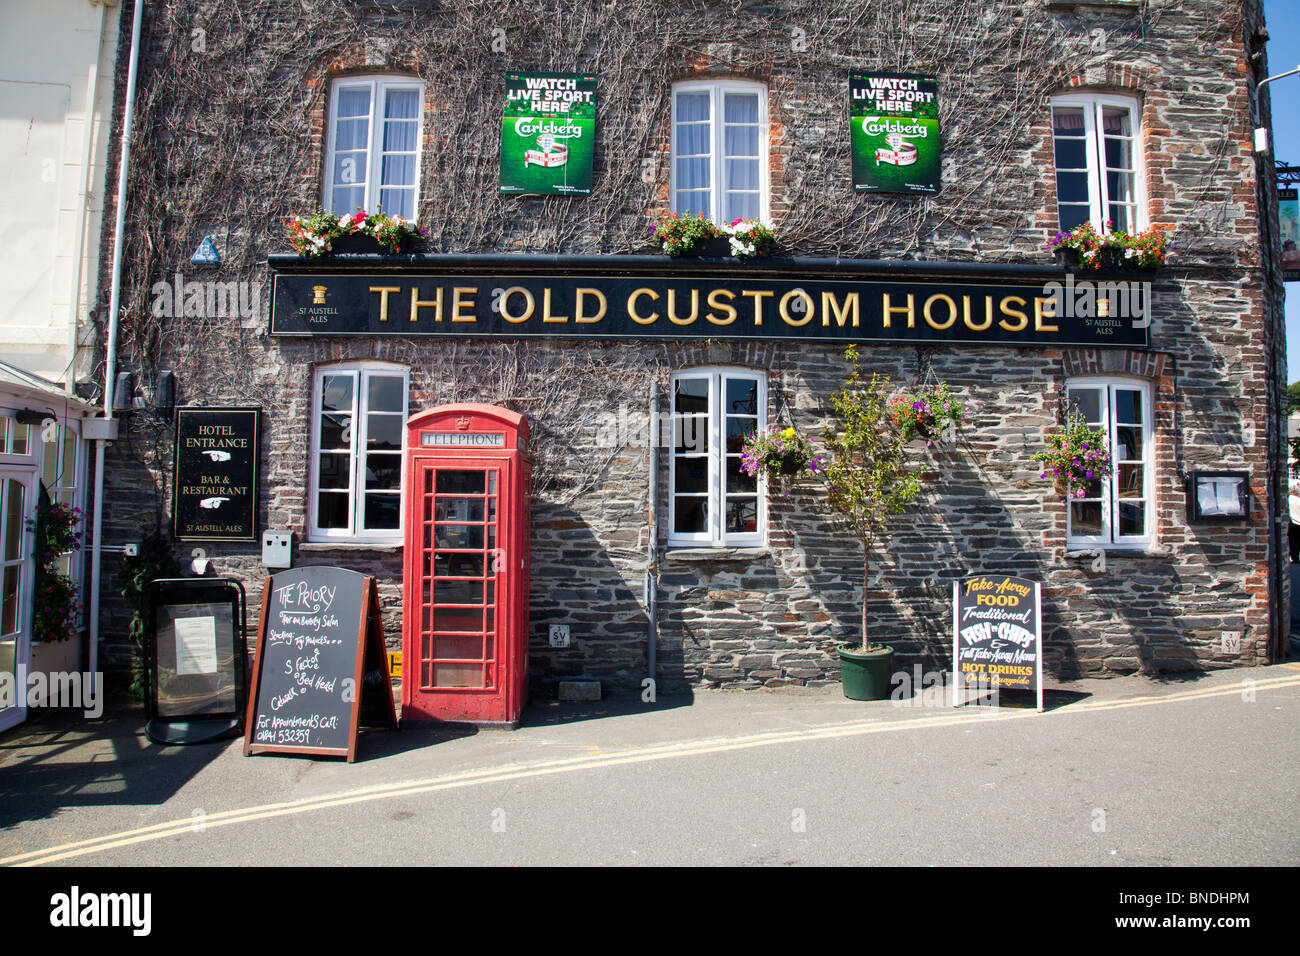 The old custom house in Padstow, Cornwall, England. Old style pub with red telephone box outside Stock Photo